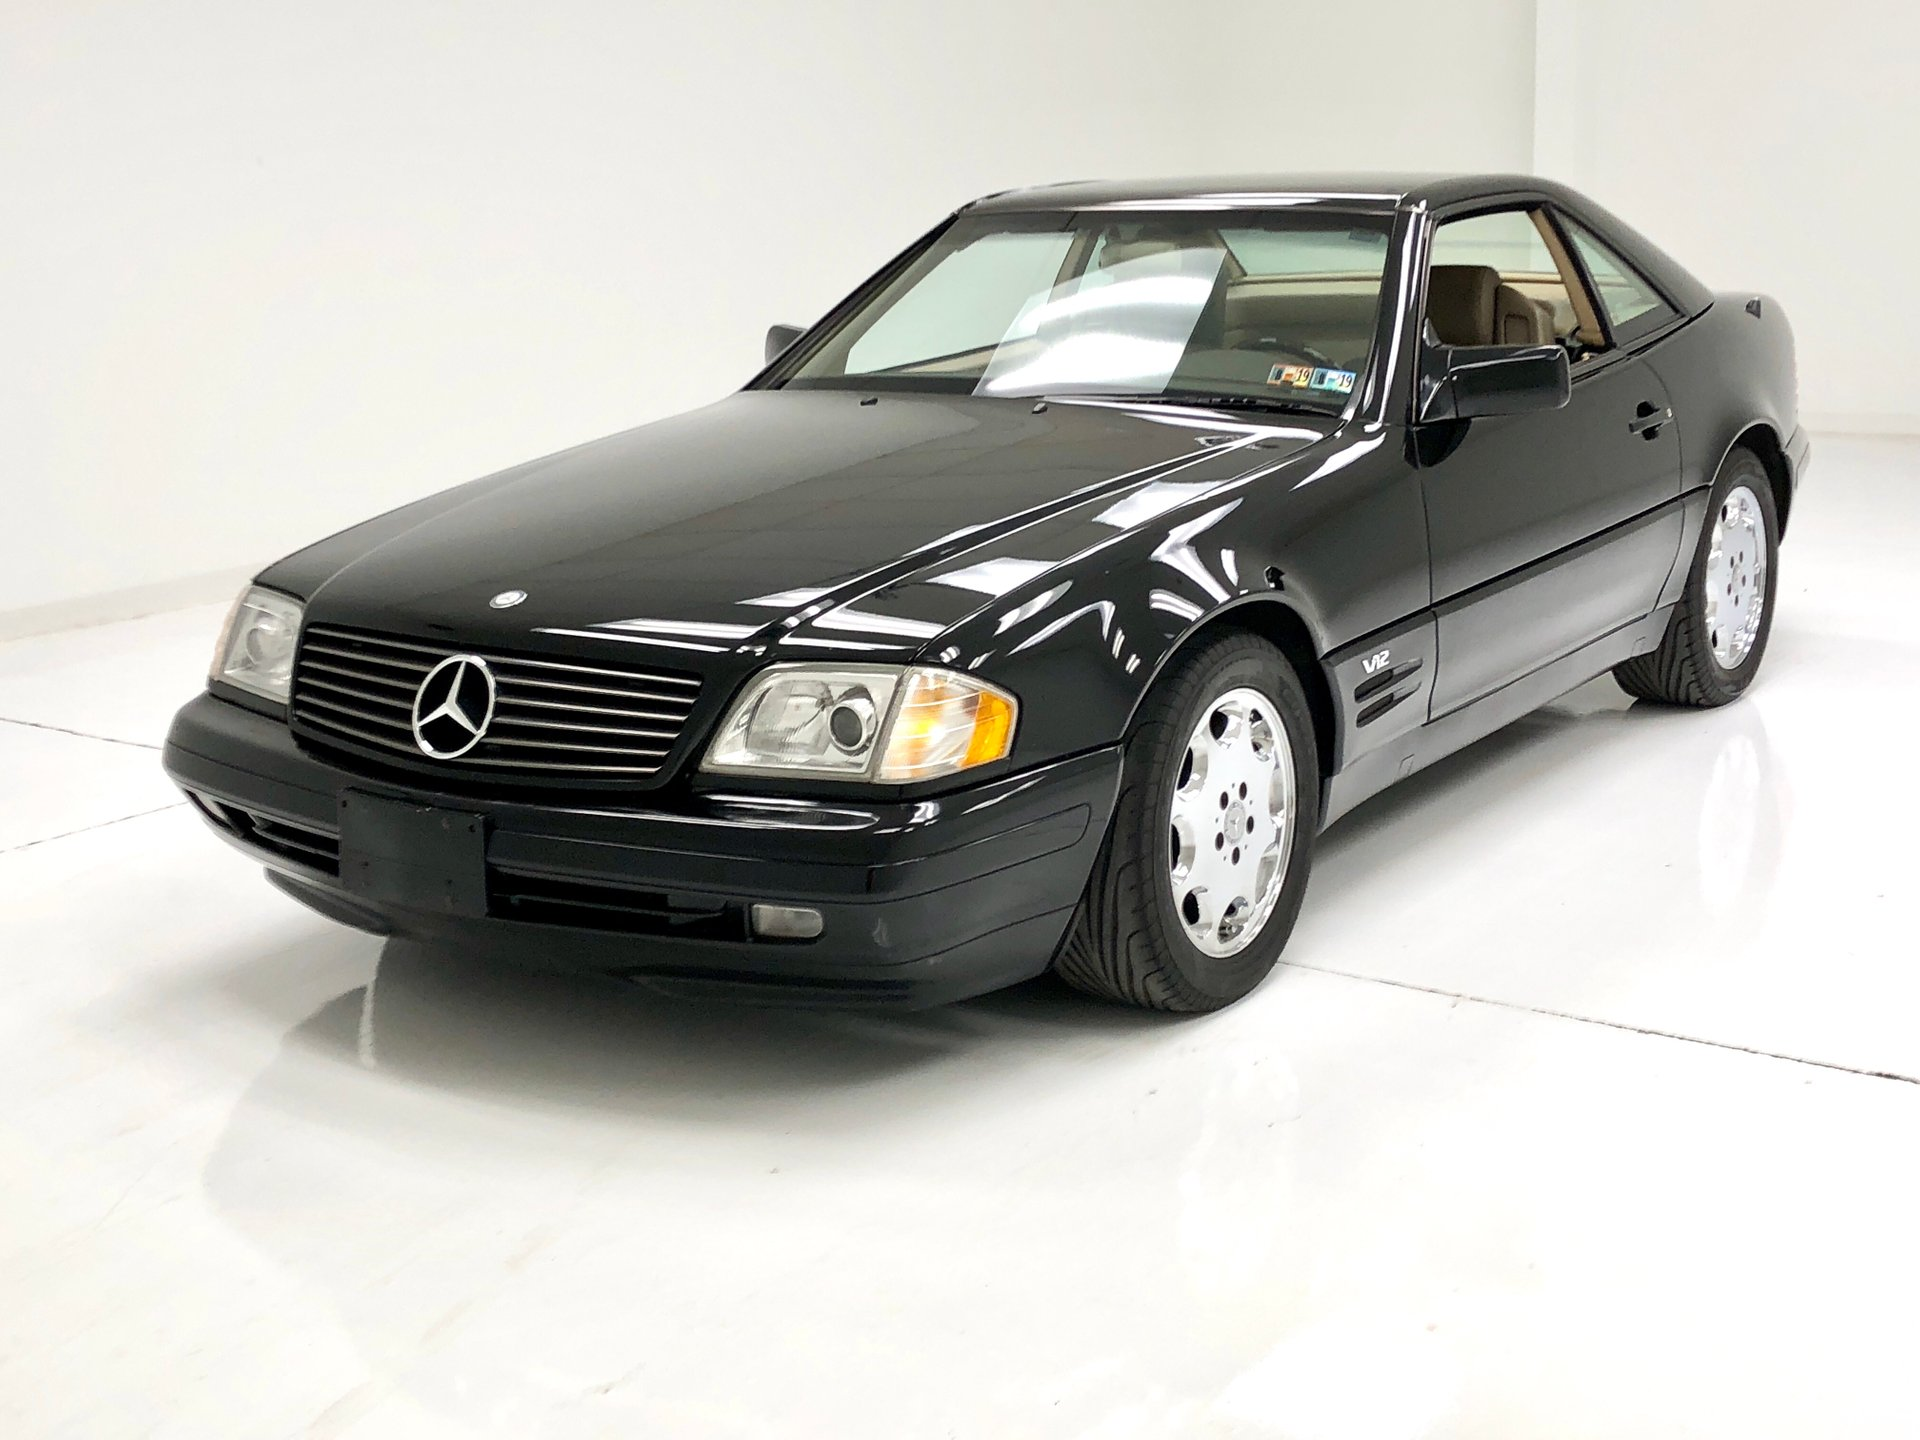 1996 Mercedes-Benz 600 SL